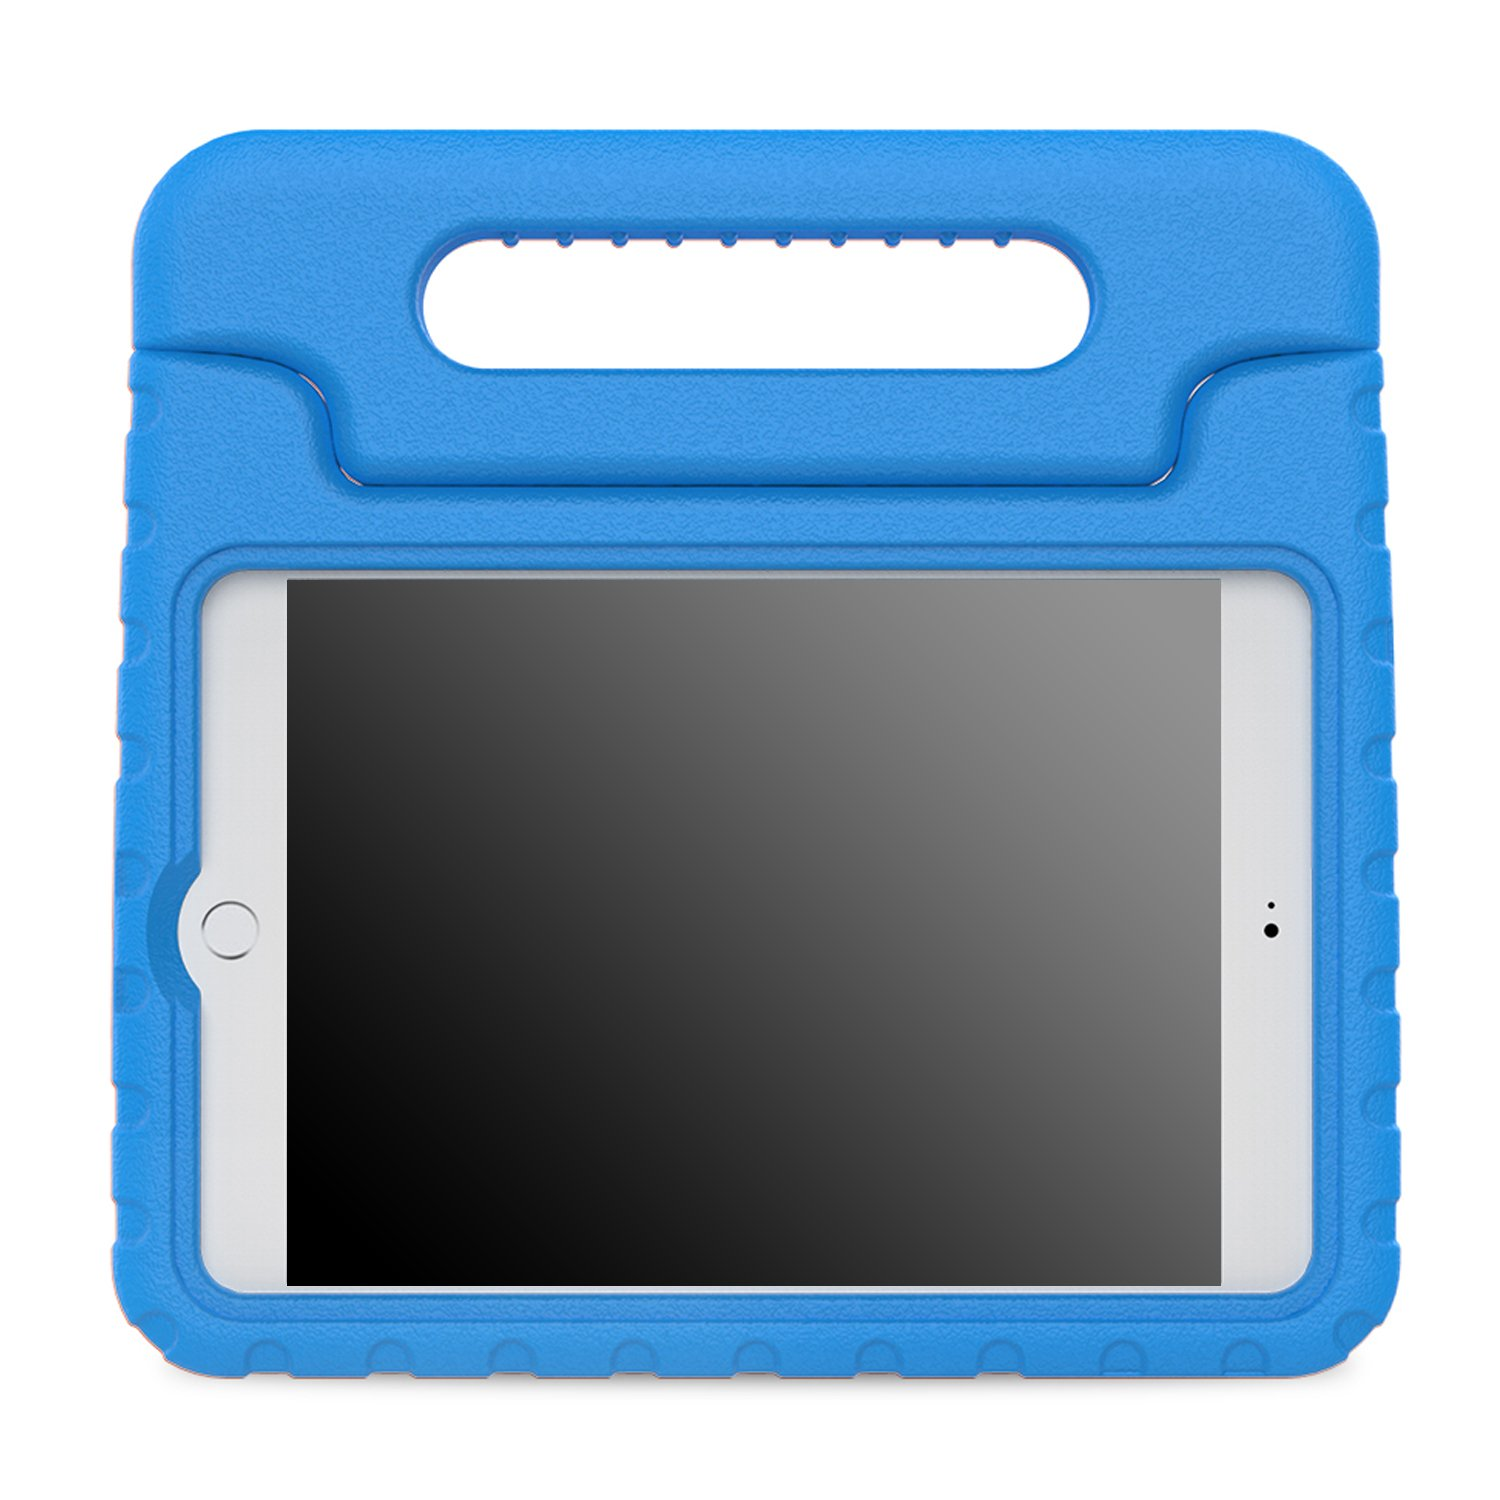 MoKo Case Fit iPad Mini 4 - Kids Shock Proof Convertible Handle Light Weight Super Protective Stand Cover Case Fit Apple iPad Mini 4 2015 Tablet, Blue